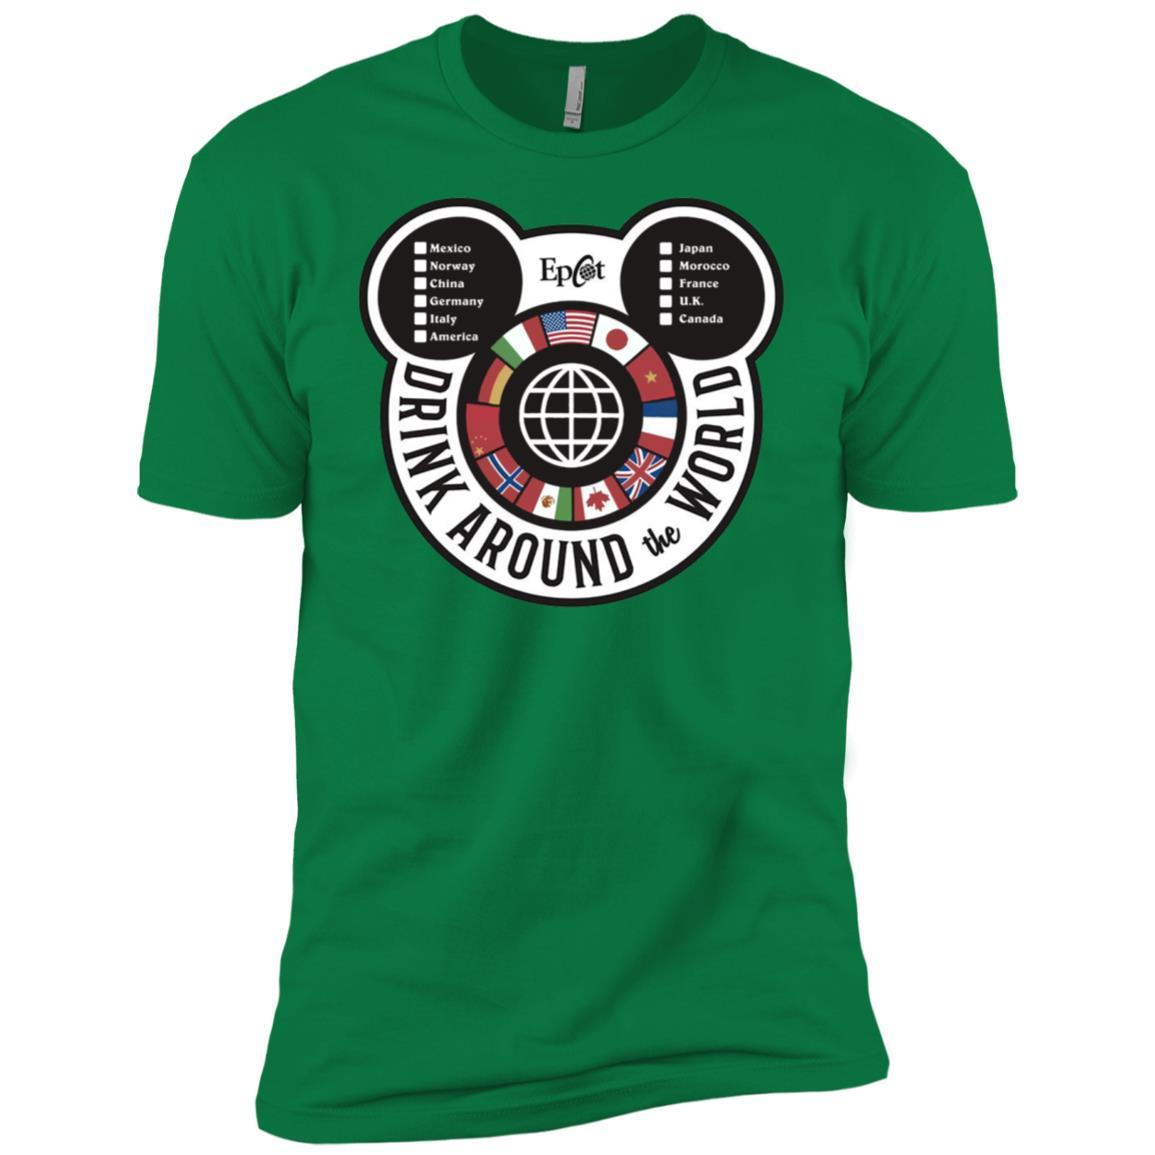 Drink Around the World - EPCOT Checklist - Short Sleeve T-Shirt Kelly Green / 3XL